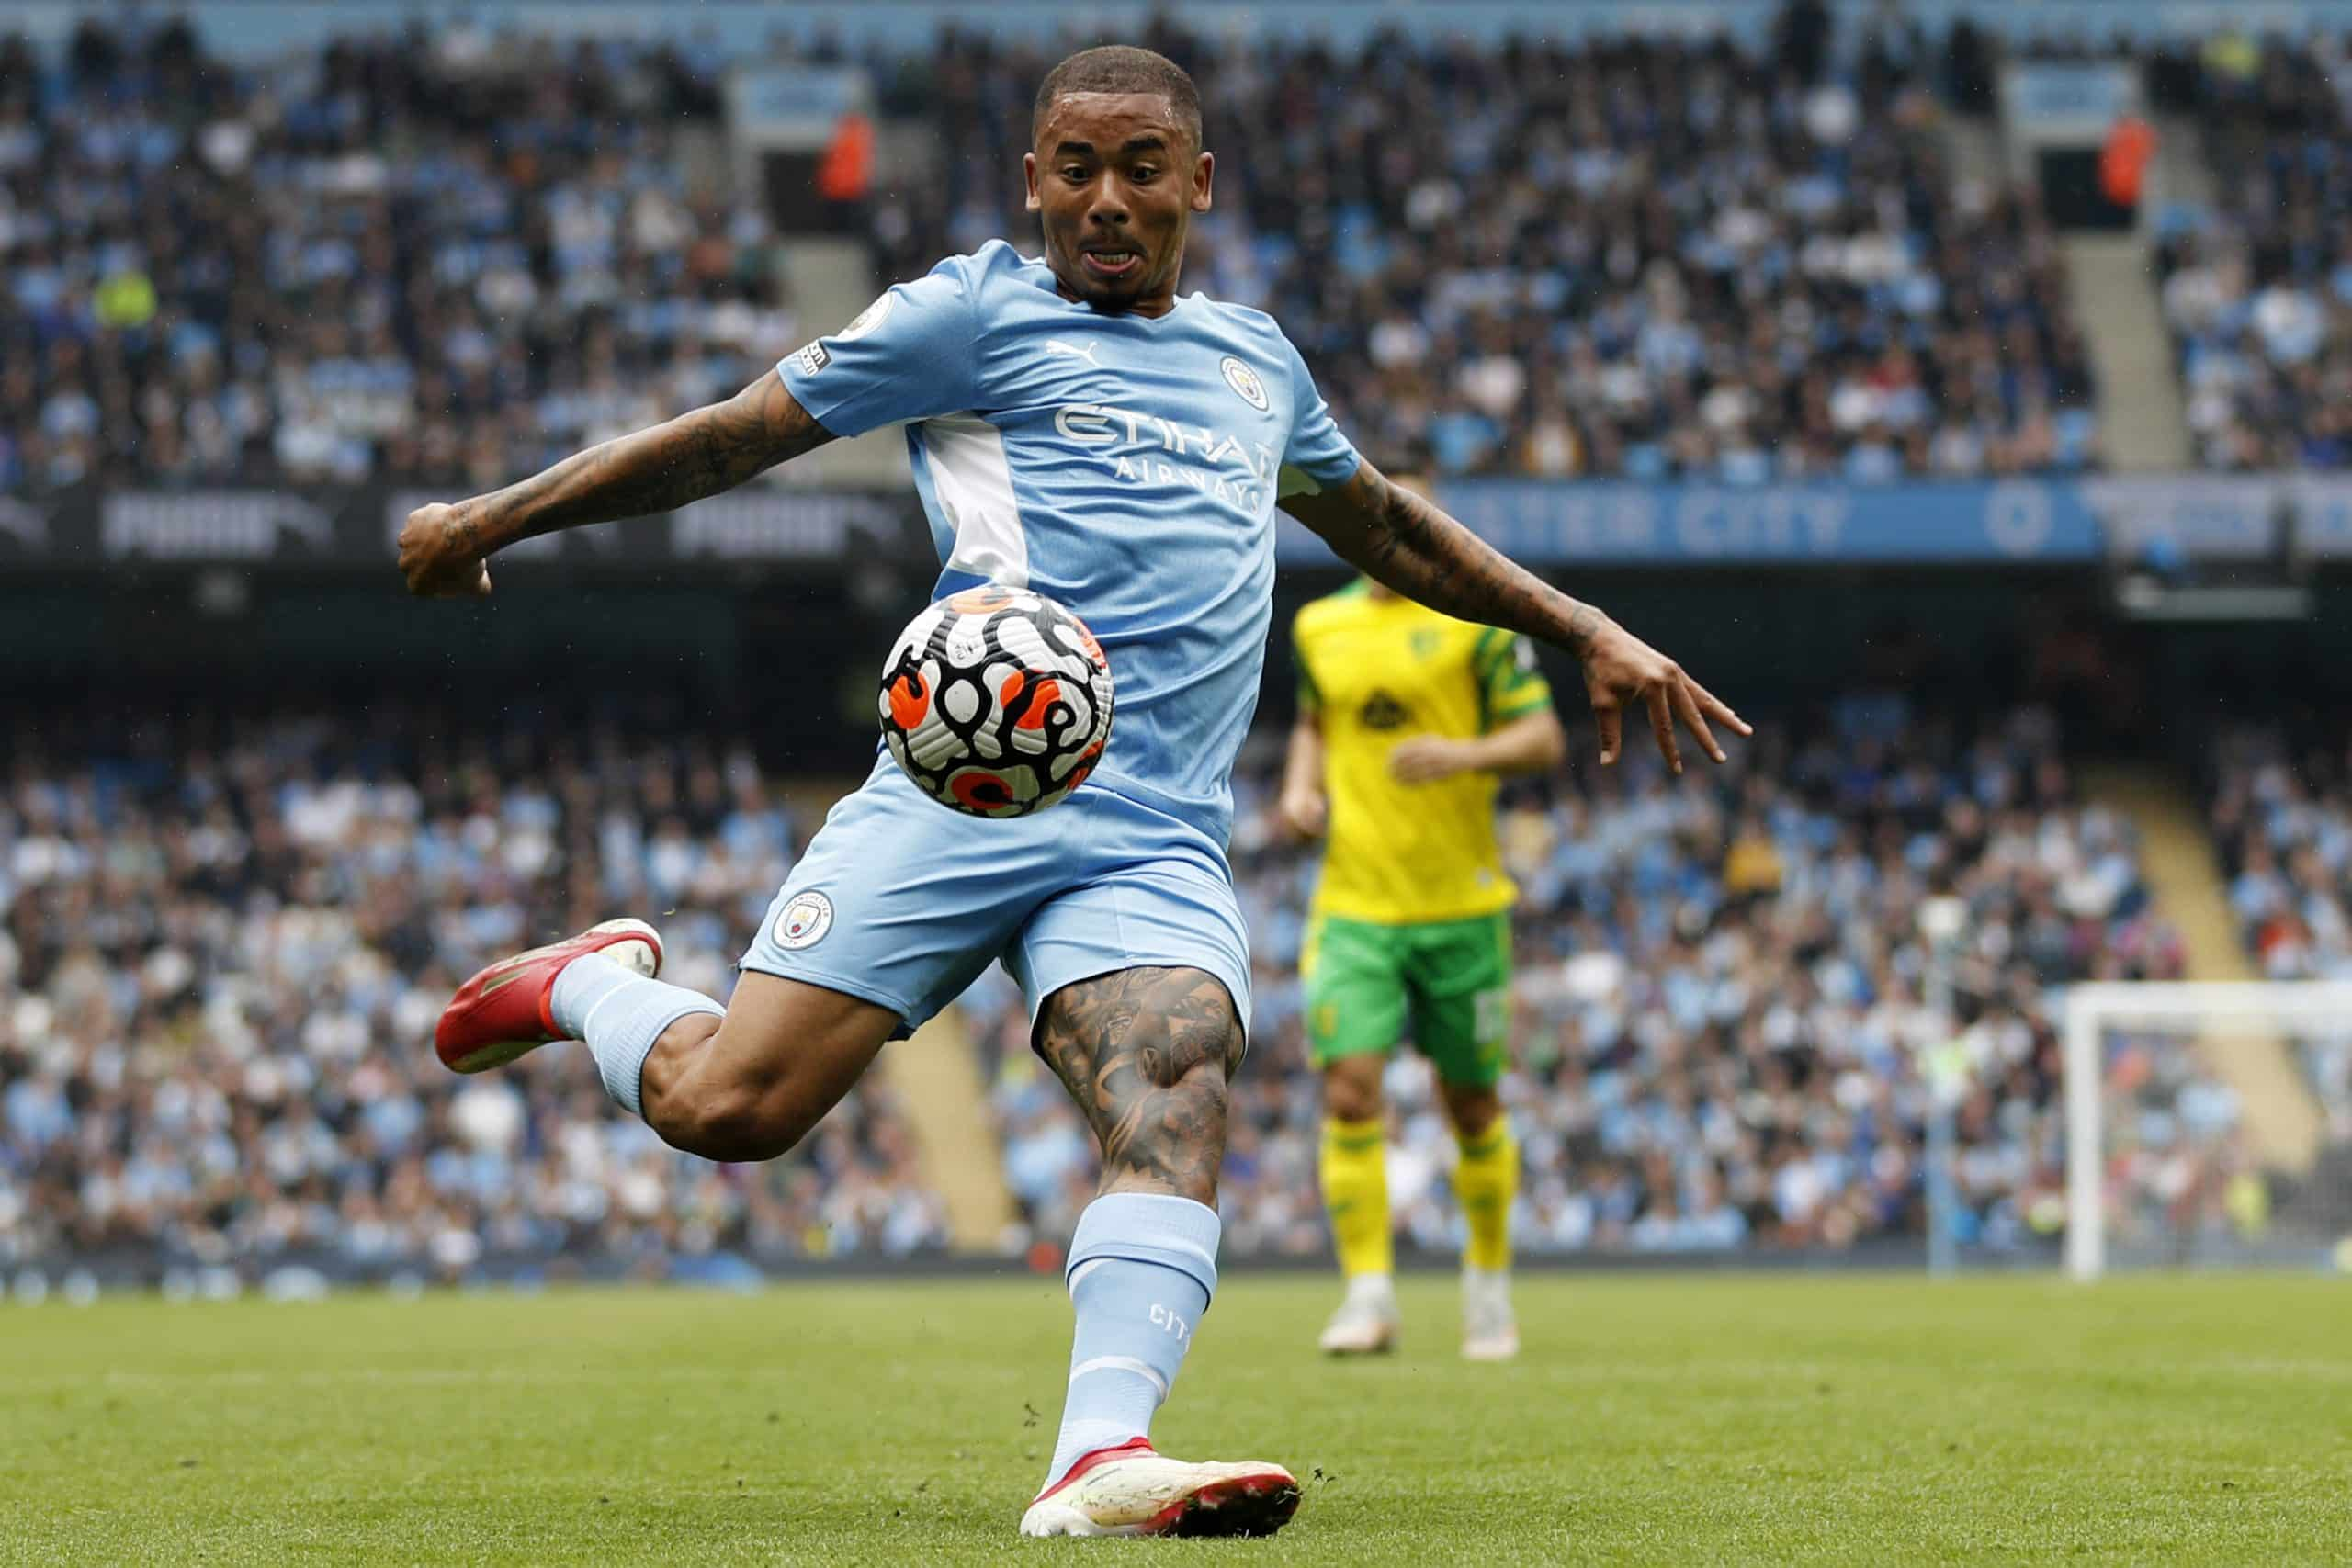 Leicester City vs Manchester City betting tips: Preview, predictions & odds